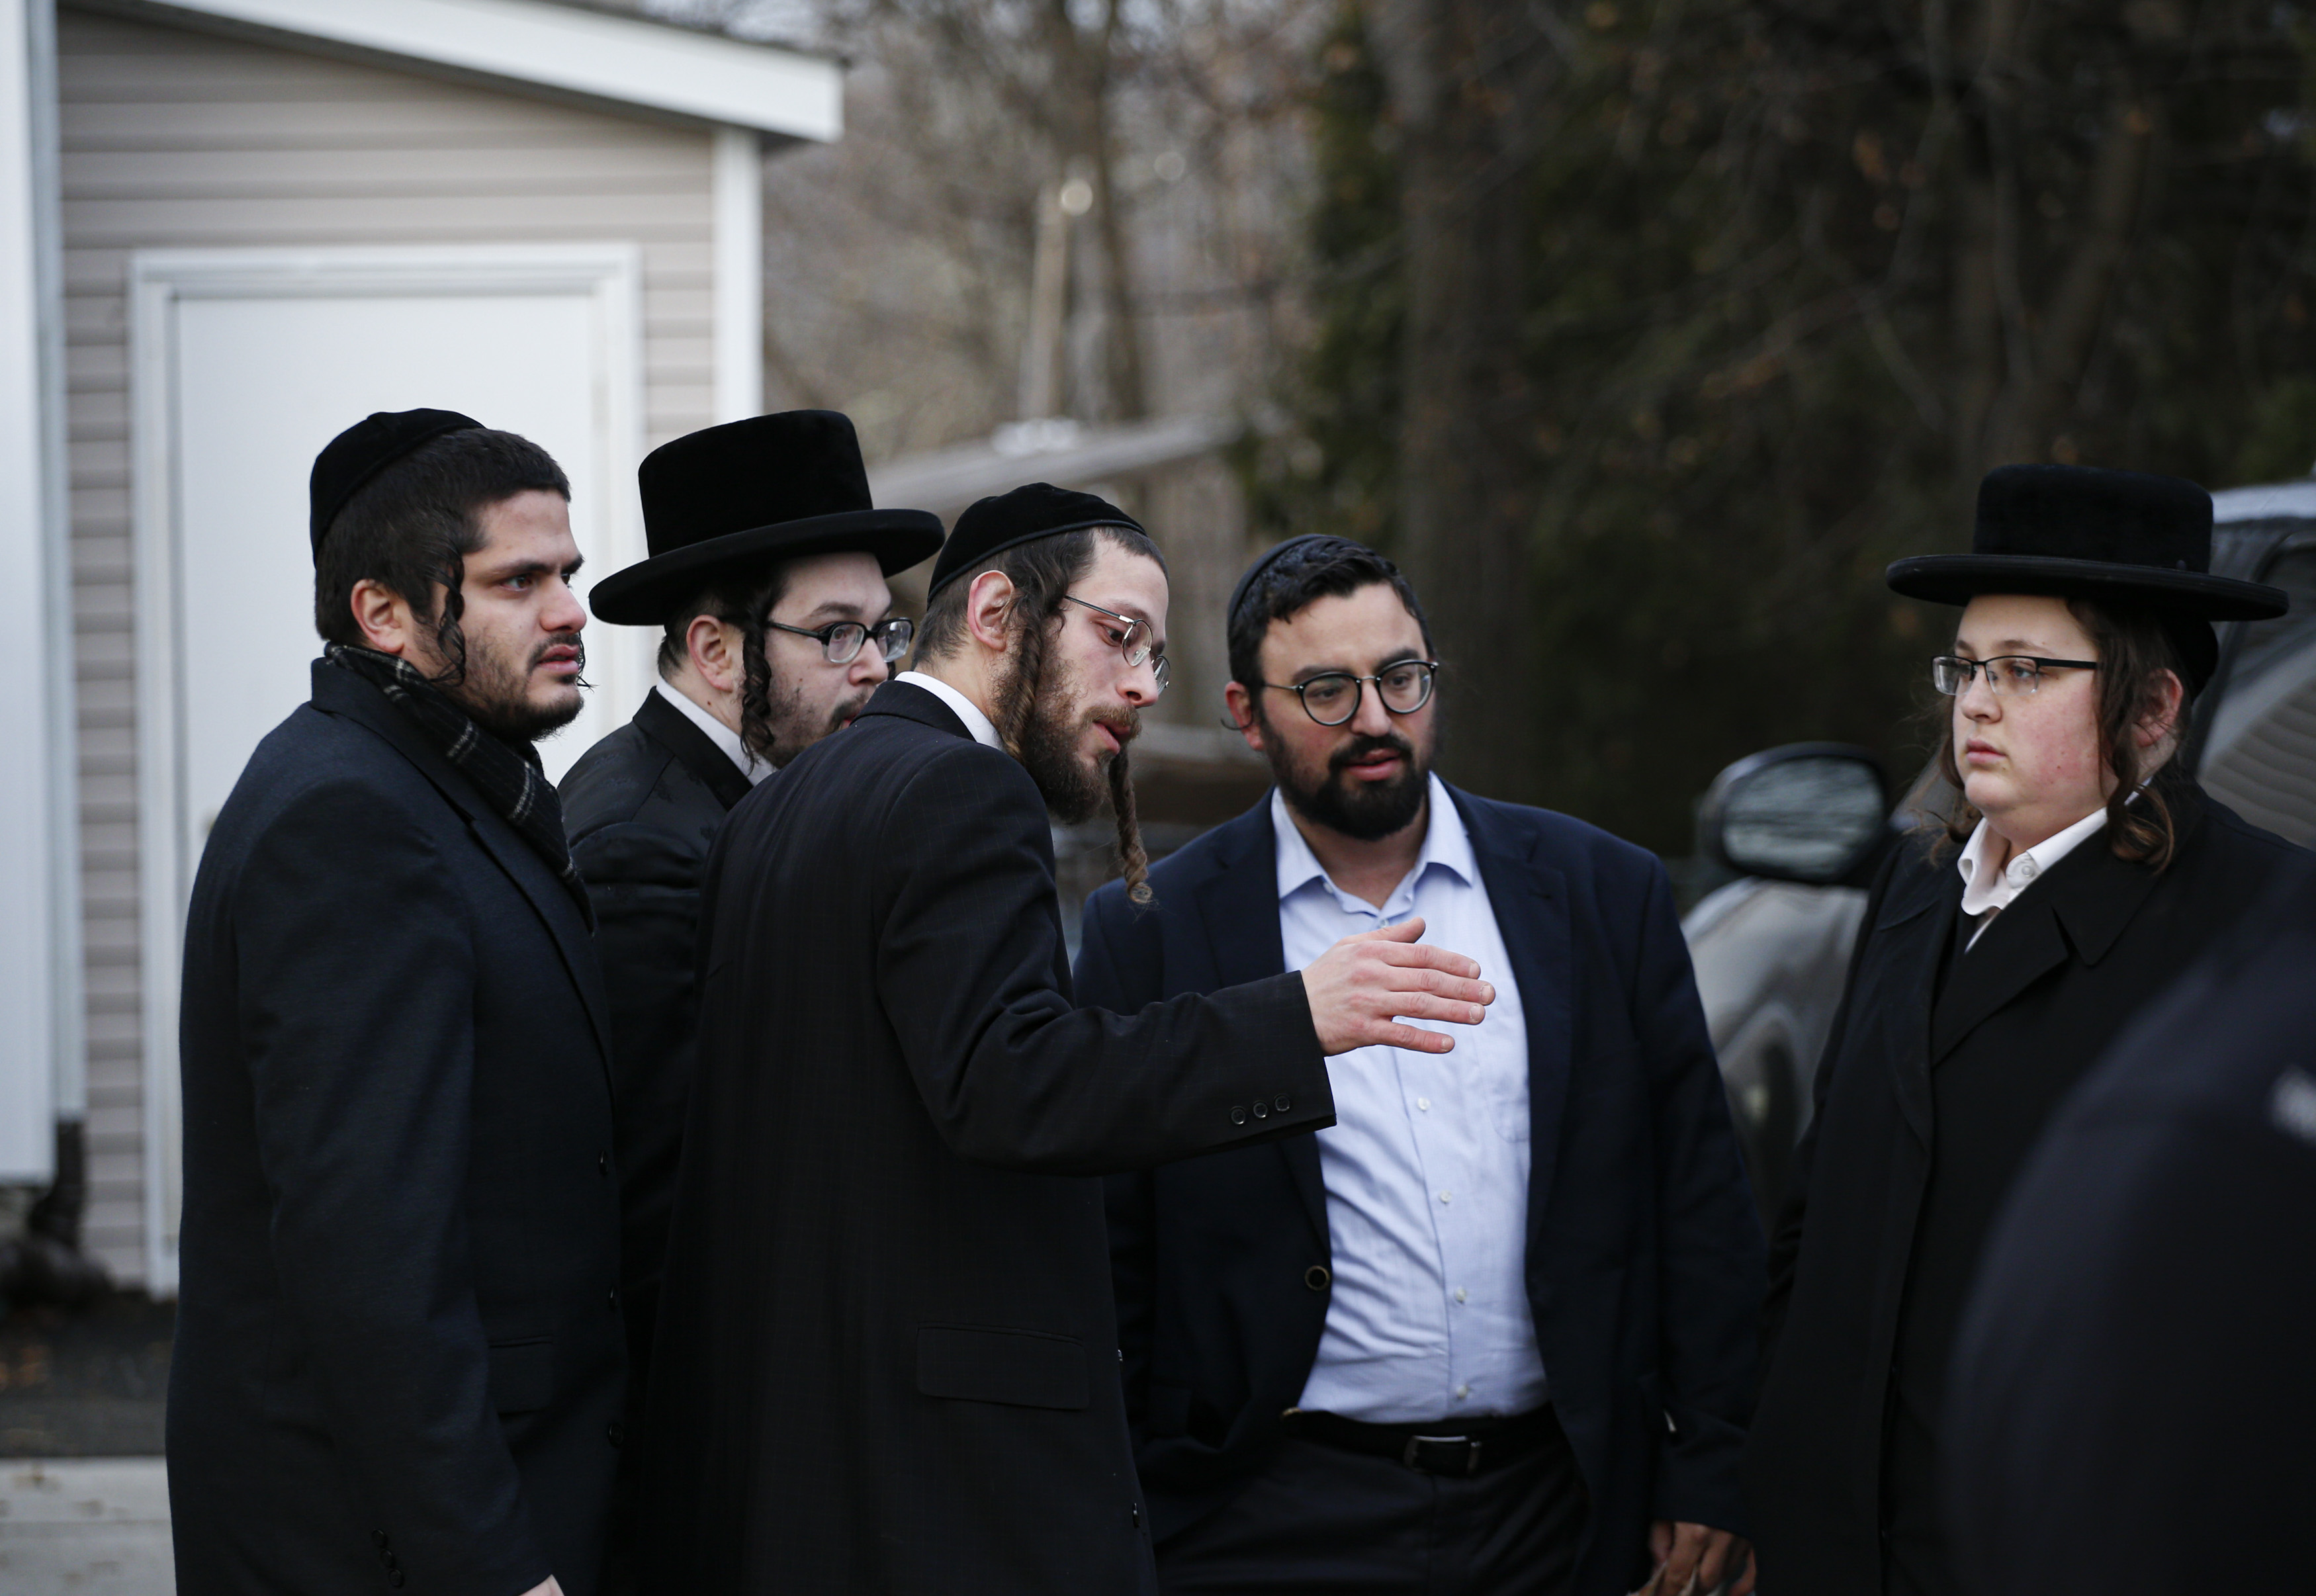 Members of the Jewish community gather outside the home of rabbi Chaim Rottenbergin Monsey, in New York on December 29, 2019 after a machete attack that took place earlier outside the rabbi's home during the Jewish festival of Hanukkah in Monsey, New York. - An intruder stabbed and wounded five people at a rabbi's house in New York during a gathering to celebrate the Jewish festival of Hanukkah late on December 28, 2019, officials and media reports said. Local police departments, speaking to AFP, declined to give the number of people injured, but a suspect has been taken into custody and a vehicle safeguarded, an NYPD spokesman said. (Photo by KENA BETANCUR/AFP via Getty Images)